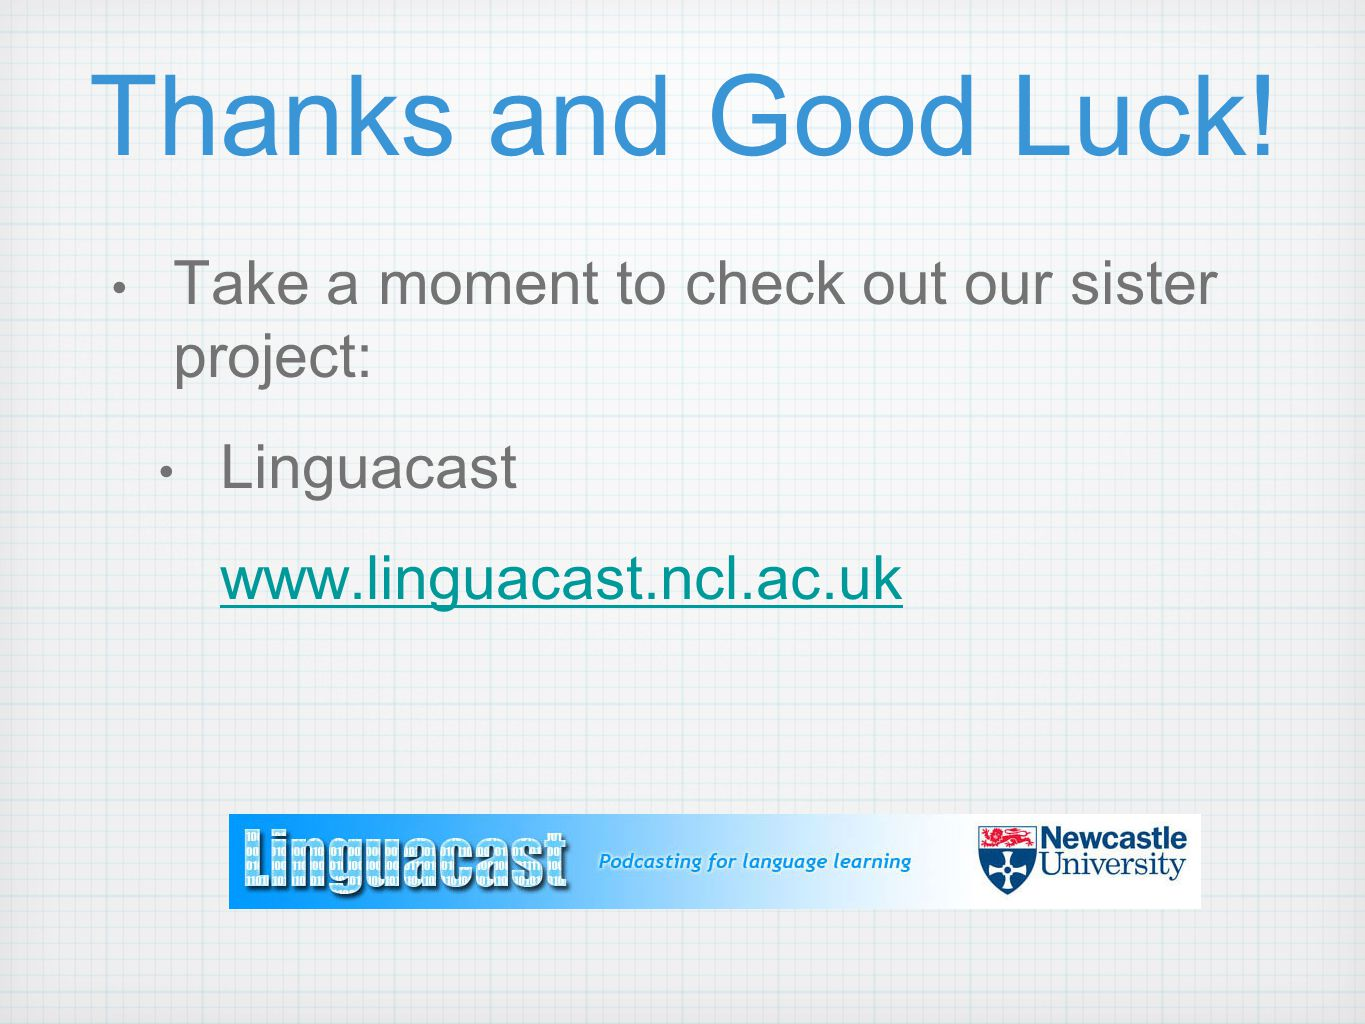 Thanks and Good Luck! Take a moment to check out our sister project: Linguacast www.linguacast.ncl.ac.uk